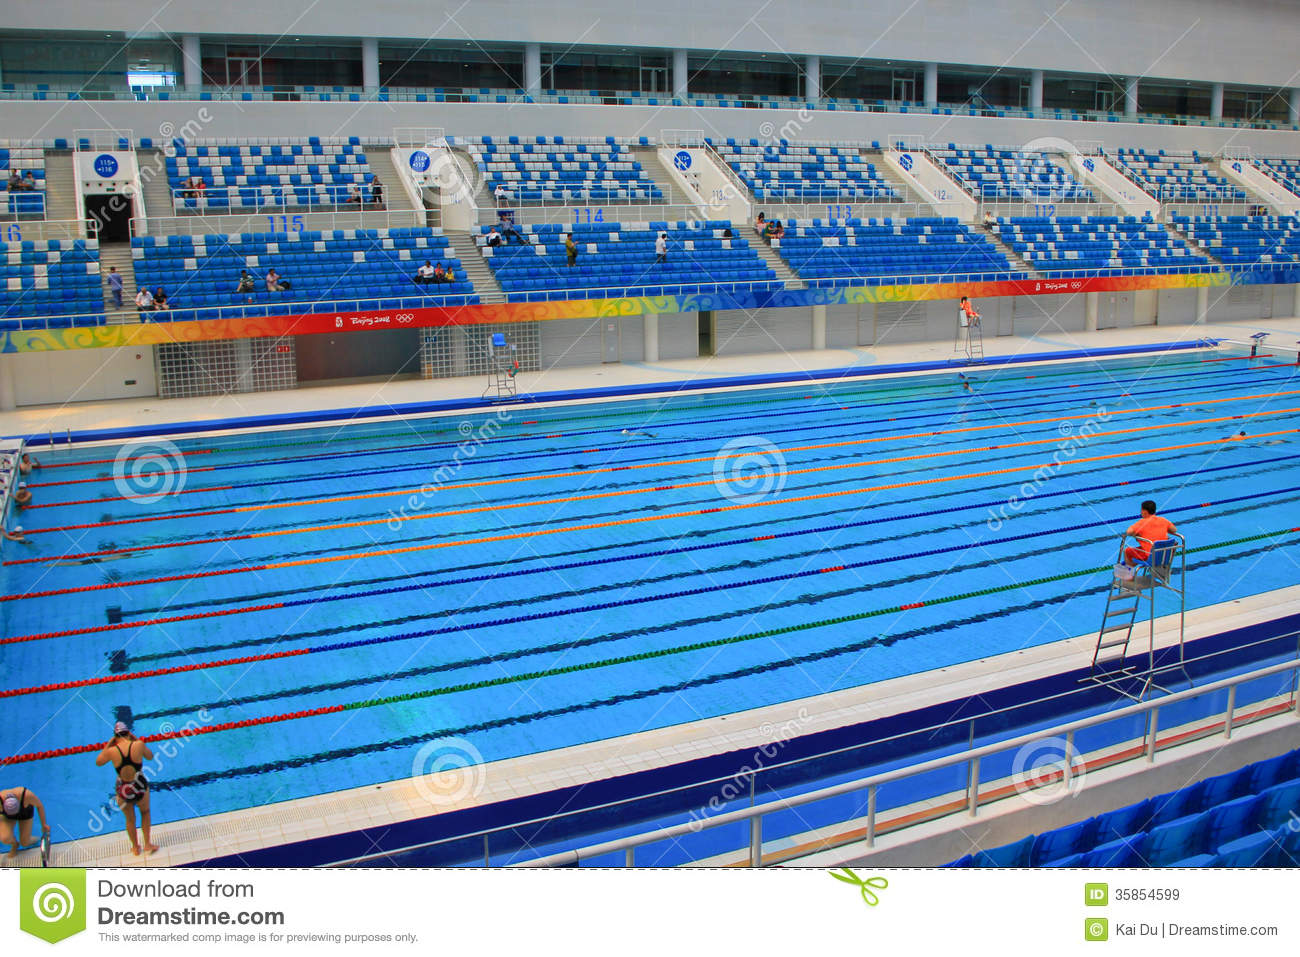 Beijing 2008 olympic swimming pool editorial stock image image of freestyle break 35854599 for Beijing swimming pool olympics